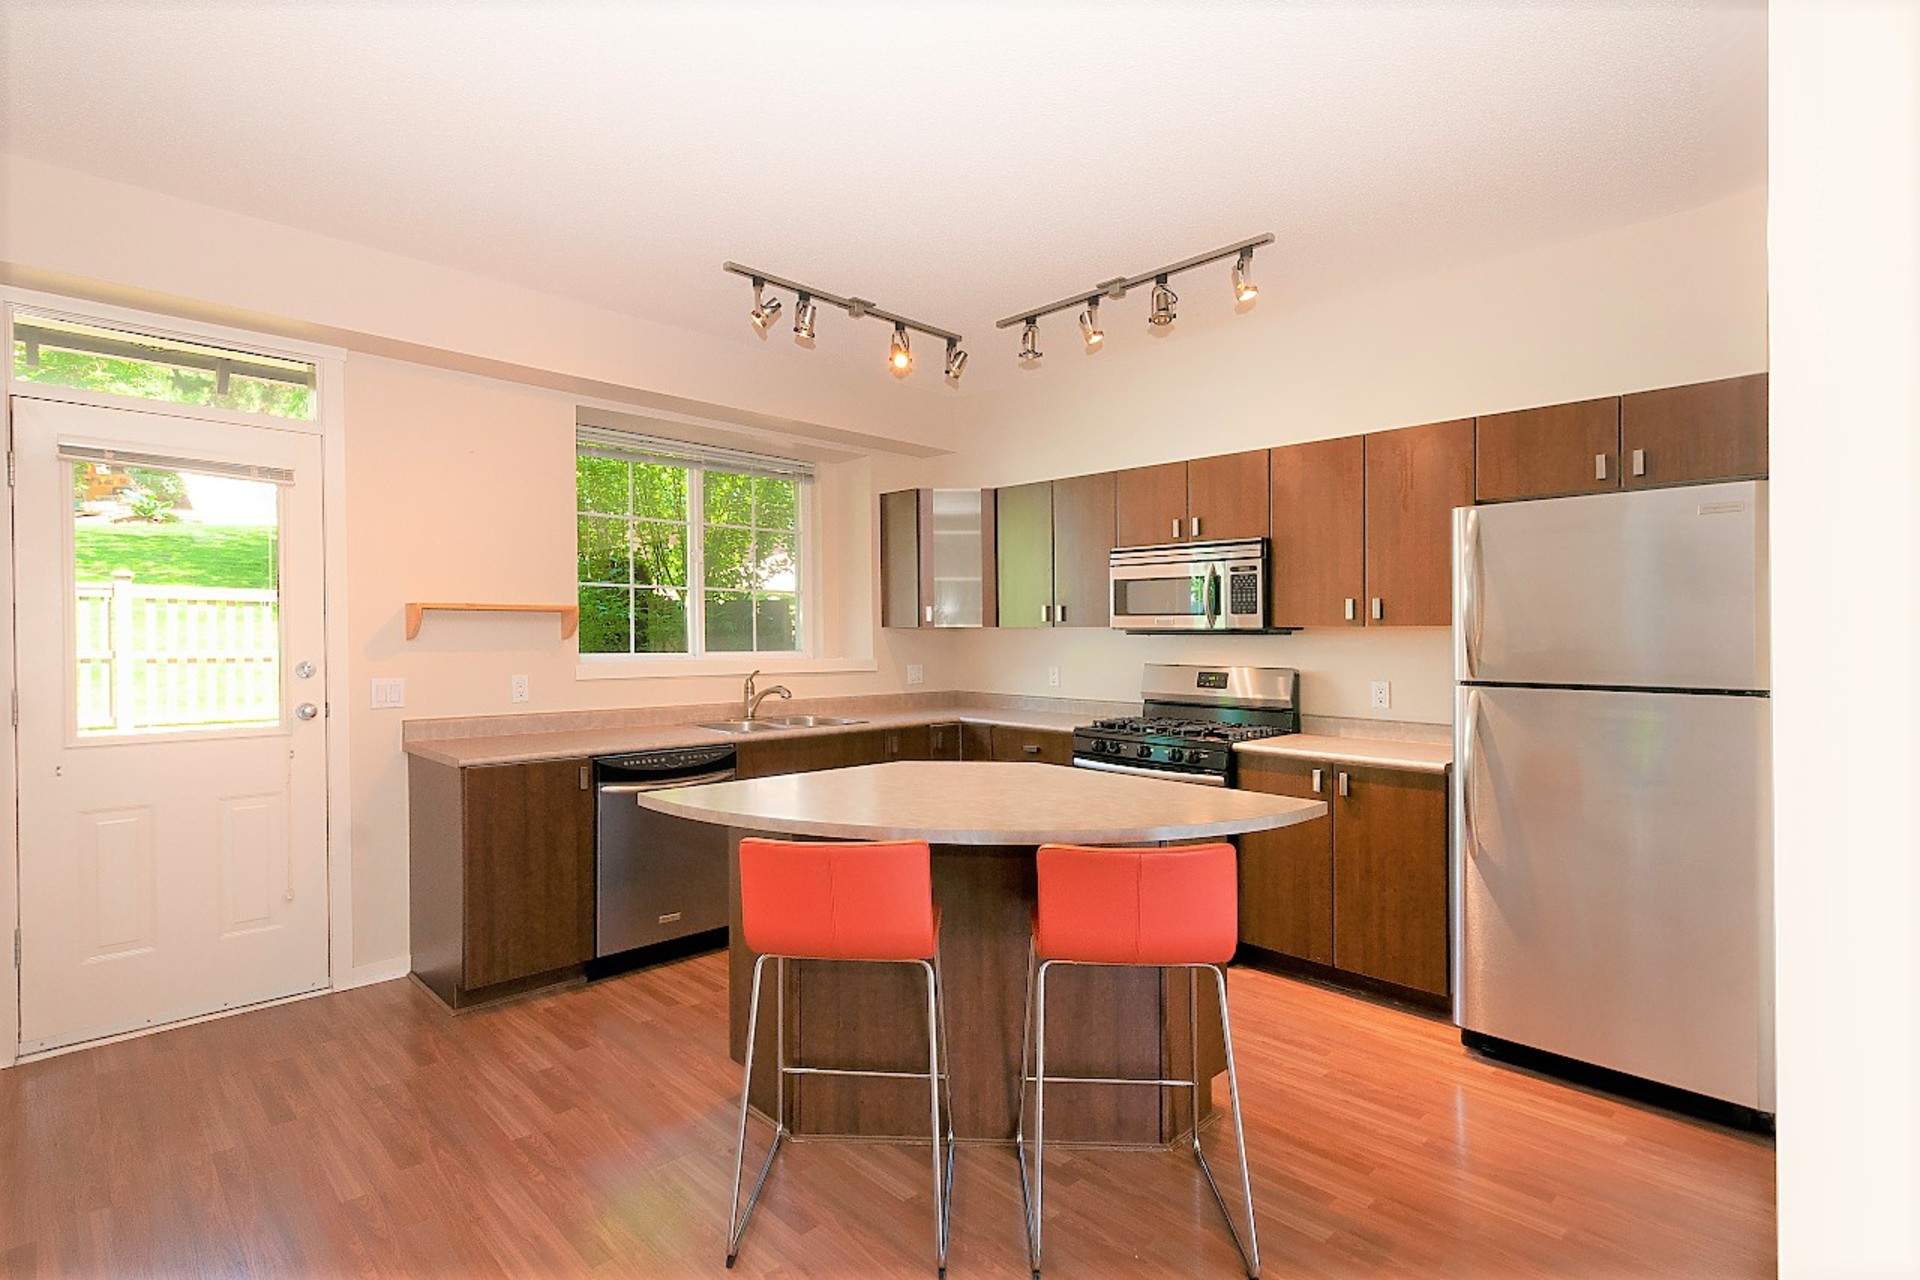 17-image-kitchen-light at 84 - 2200 Panorama, Heritage Woods PM, Port Moody